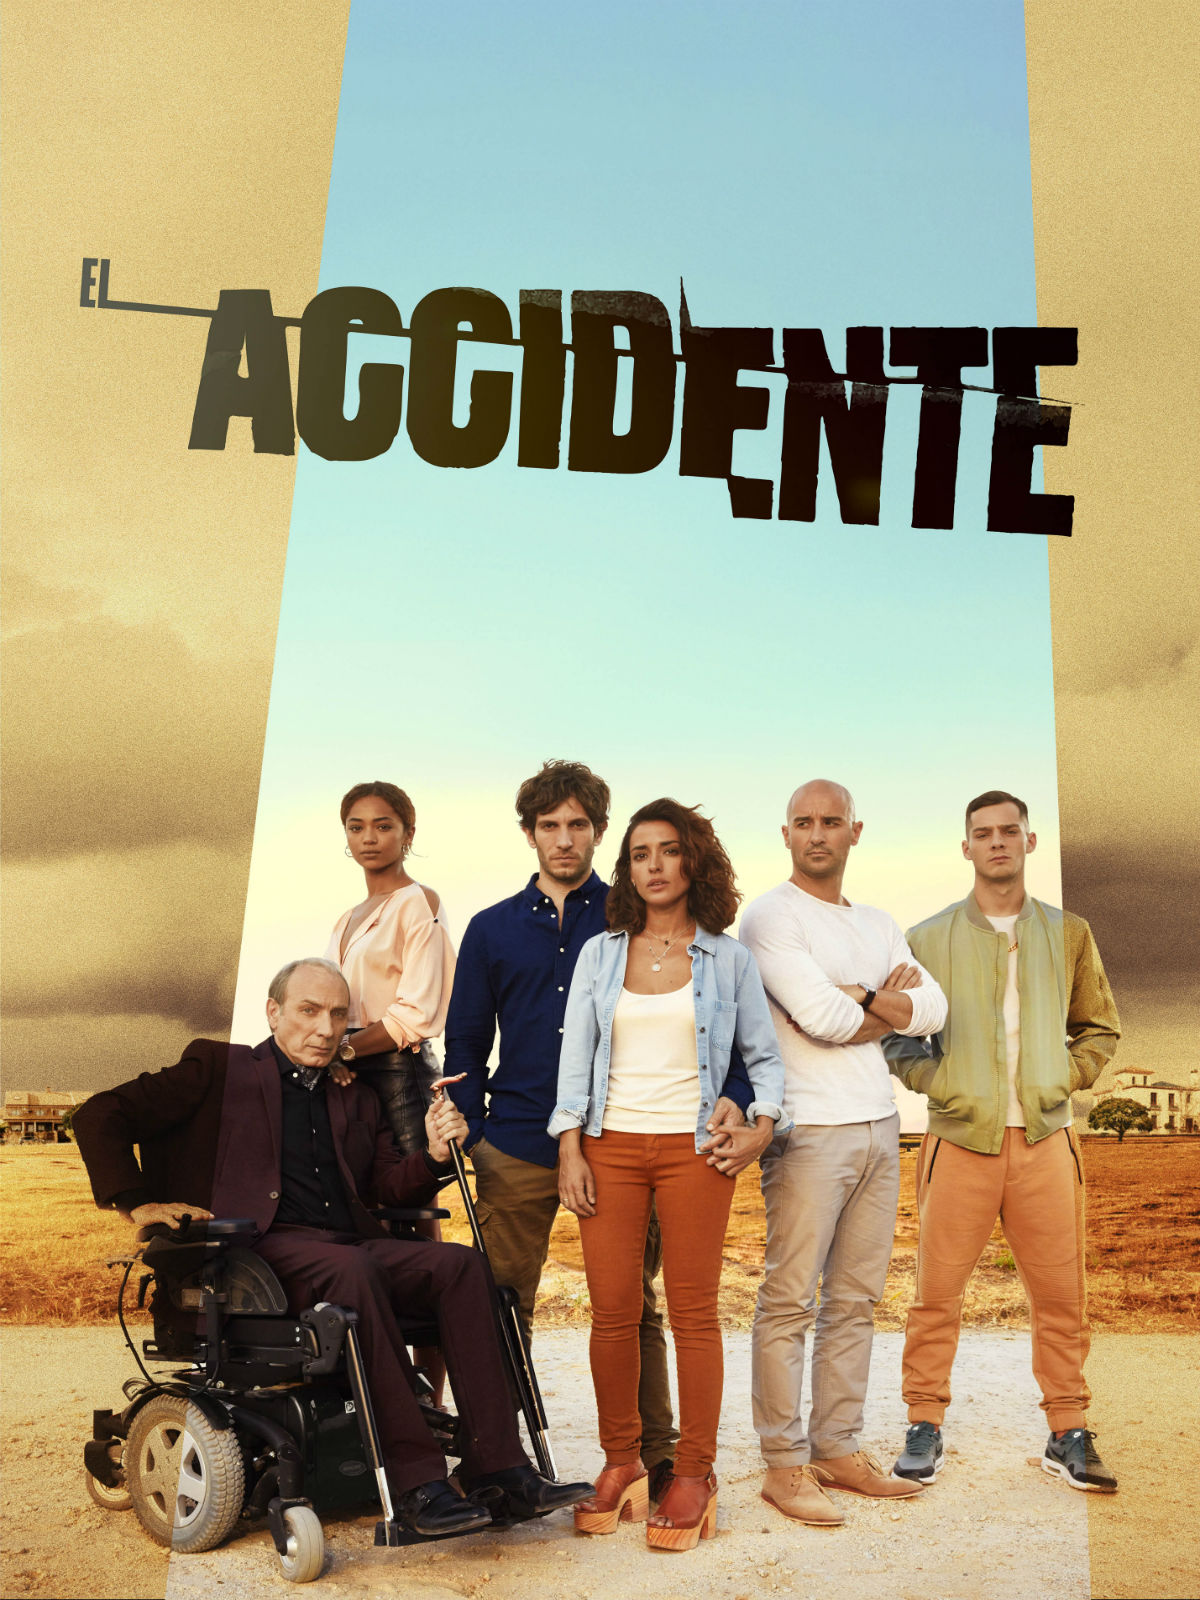 Matrimonio Accidente Sinopsis : El accidente serie sensacine